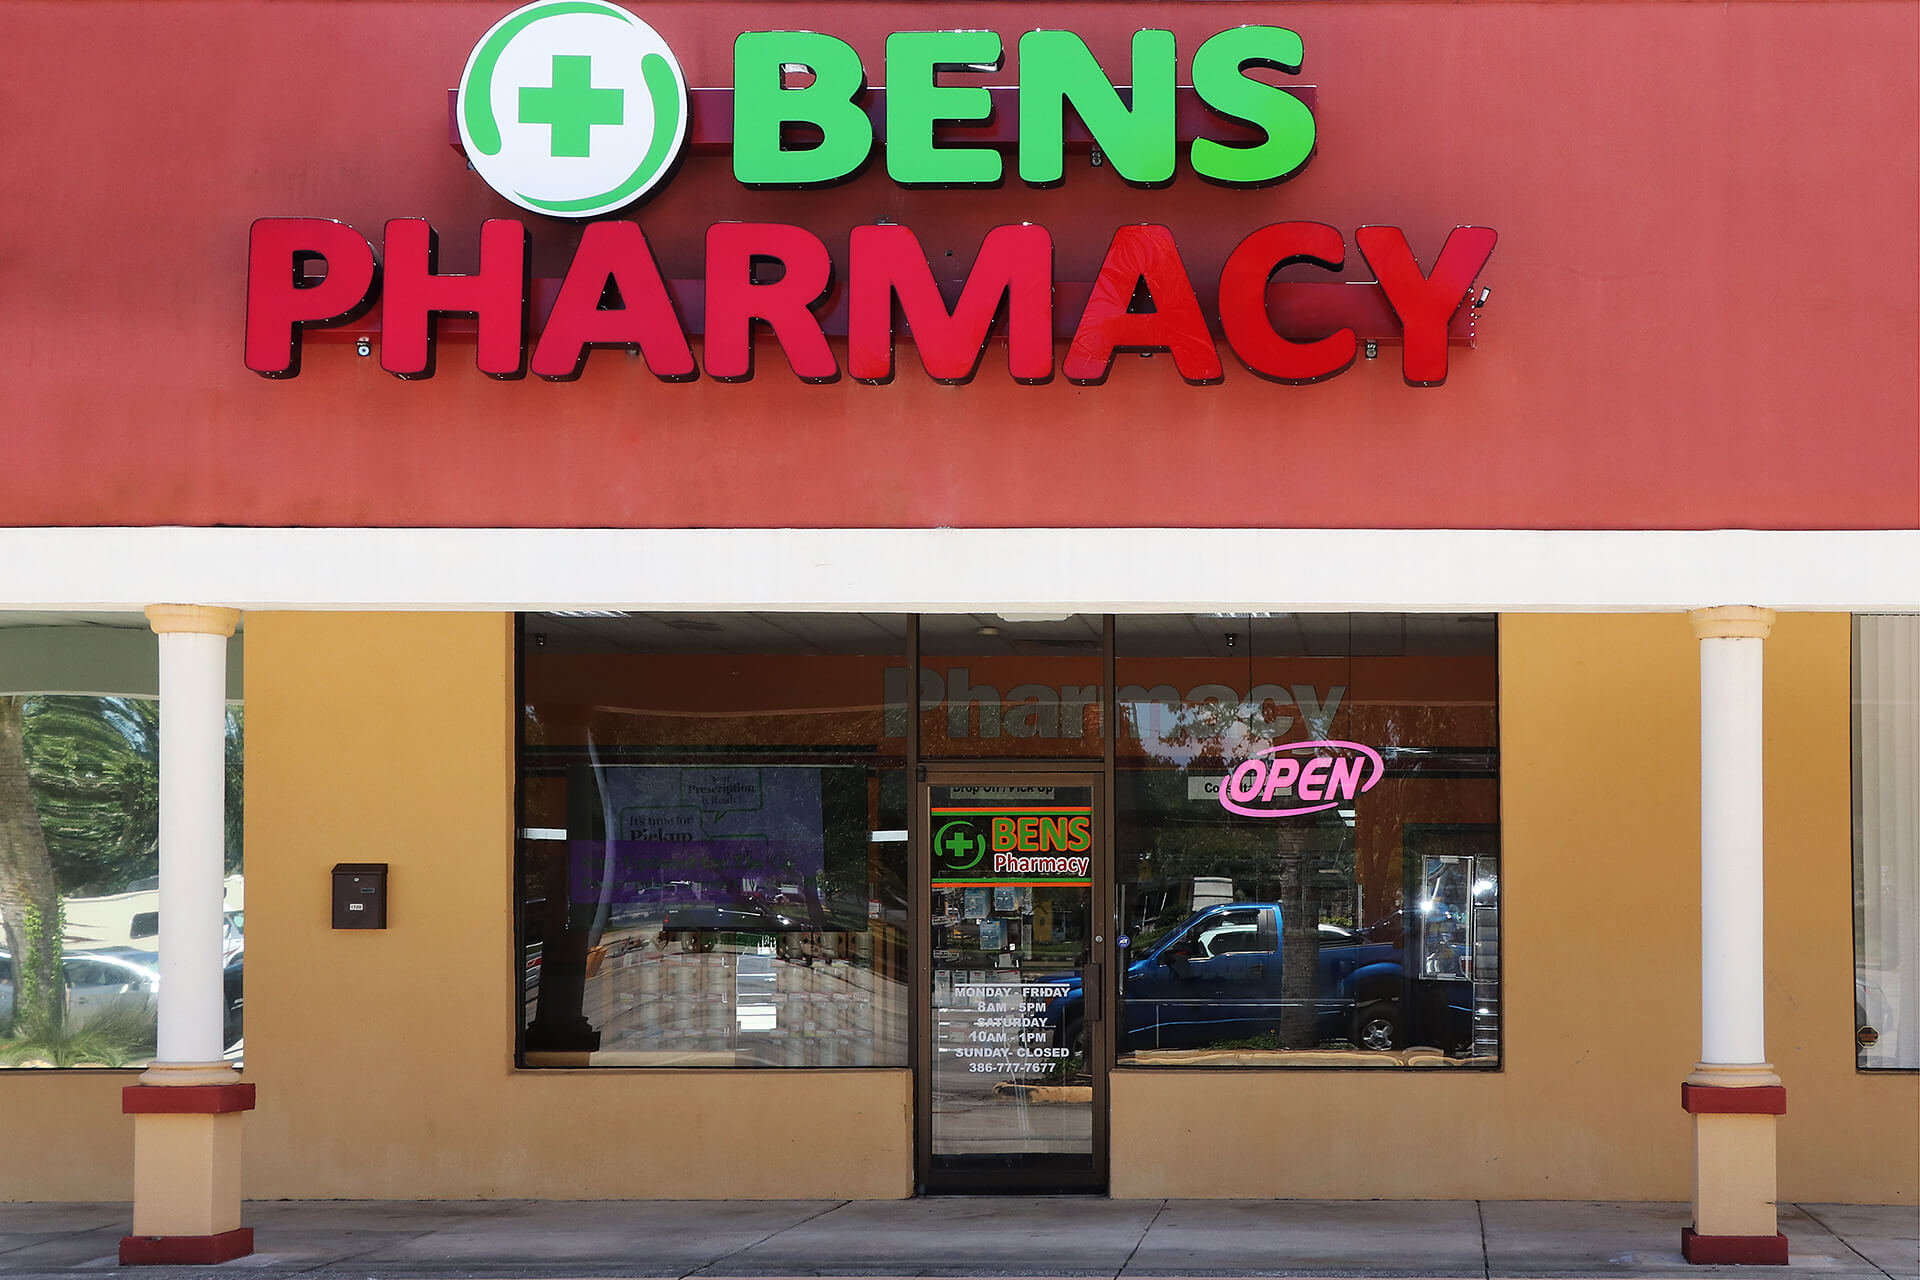 bens pharmacy front